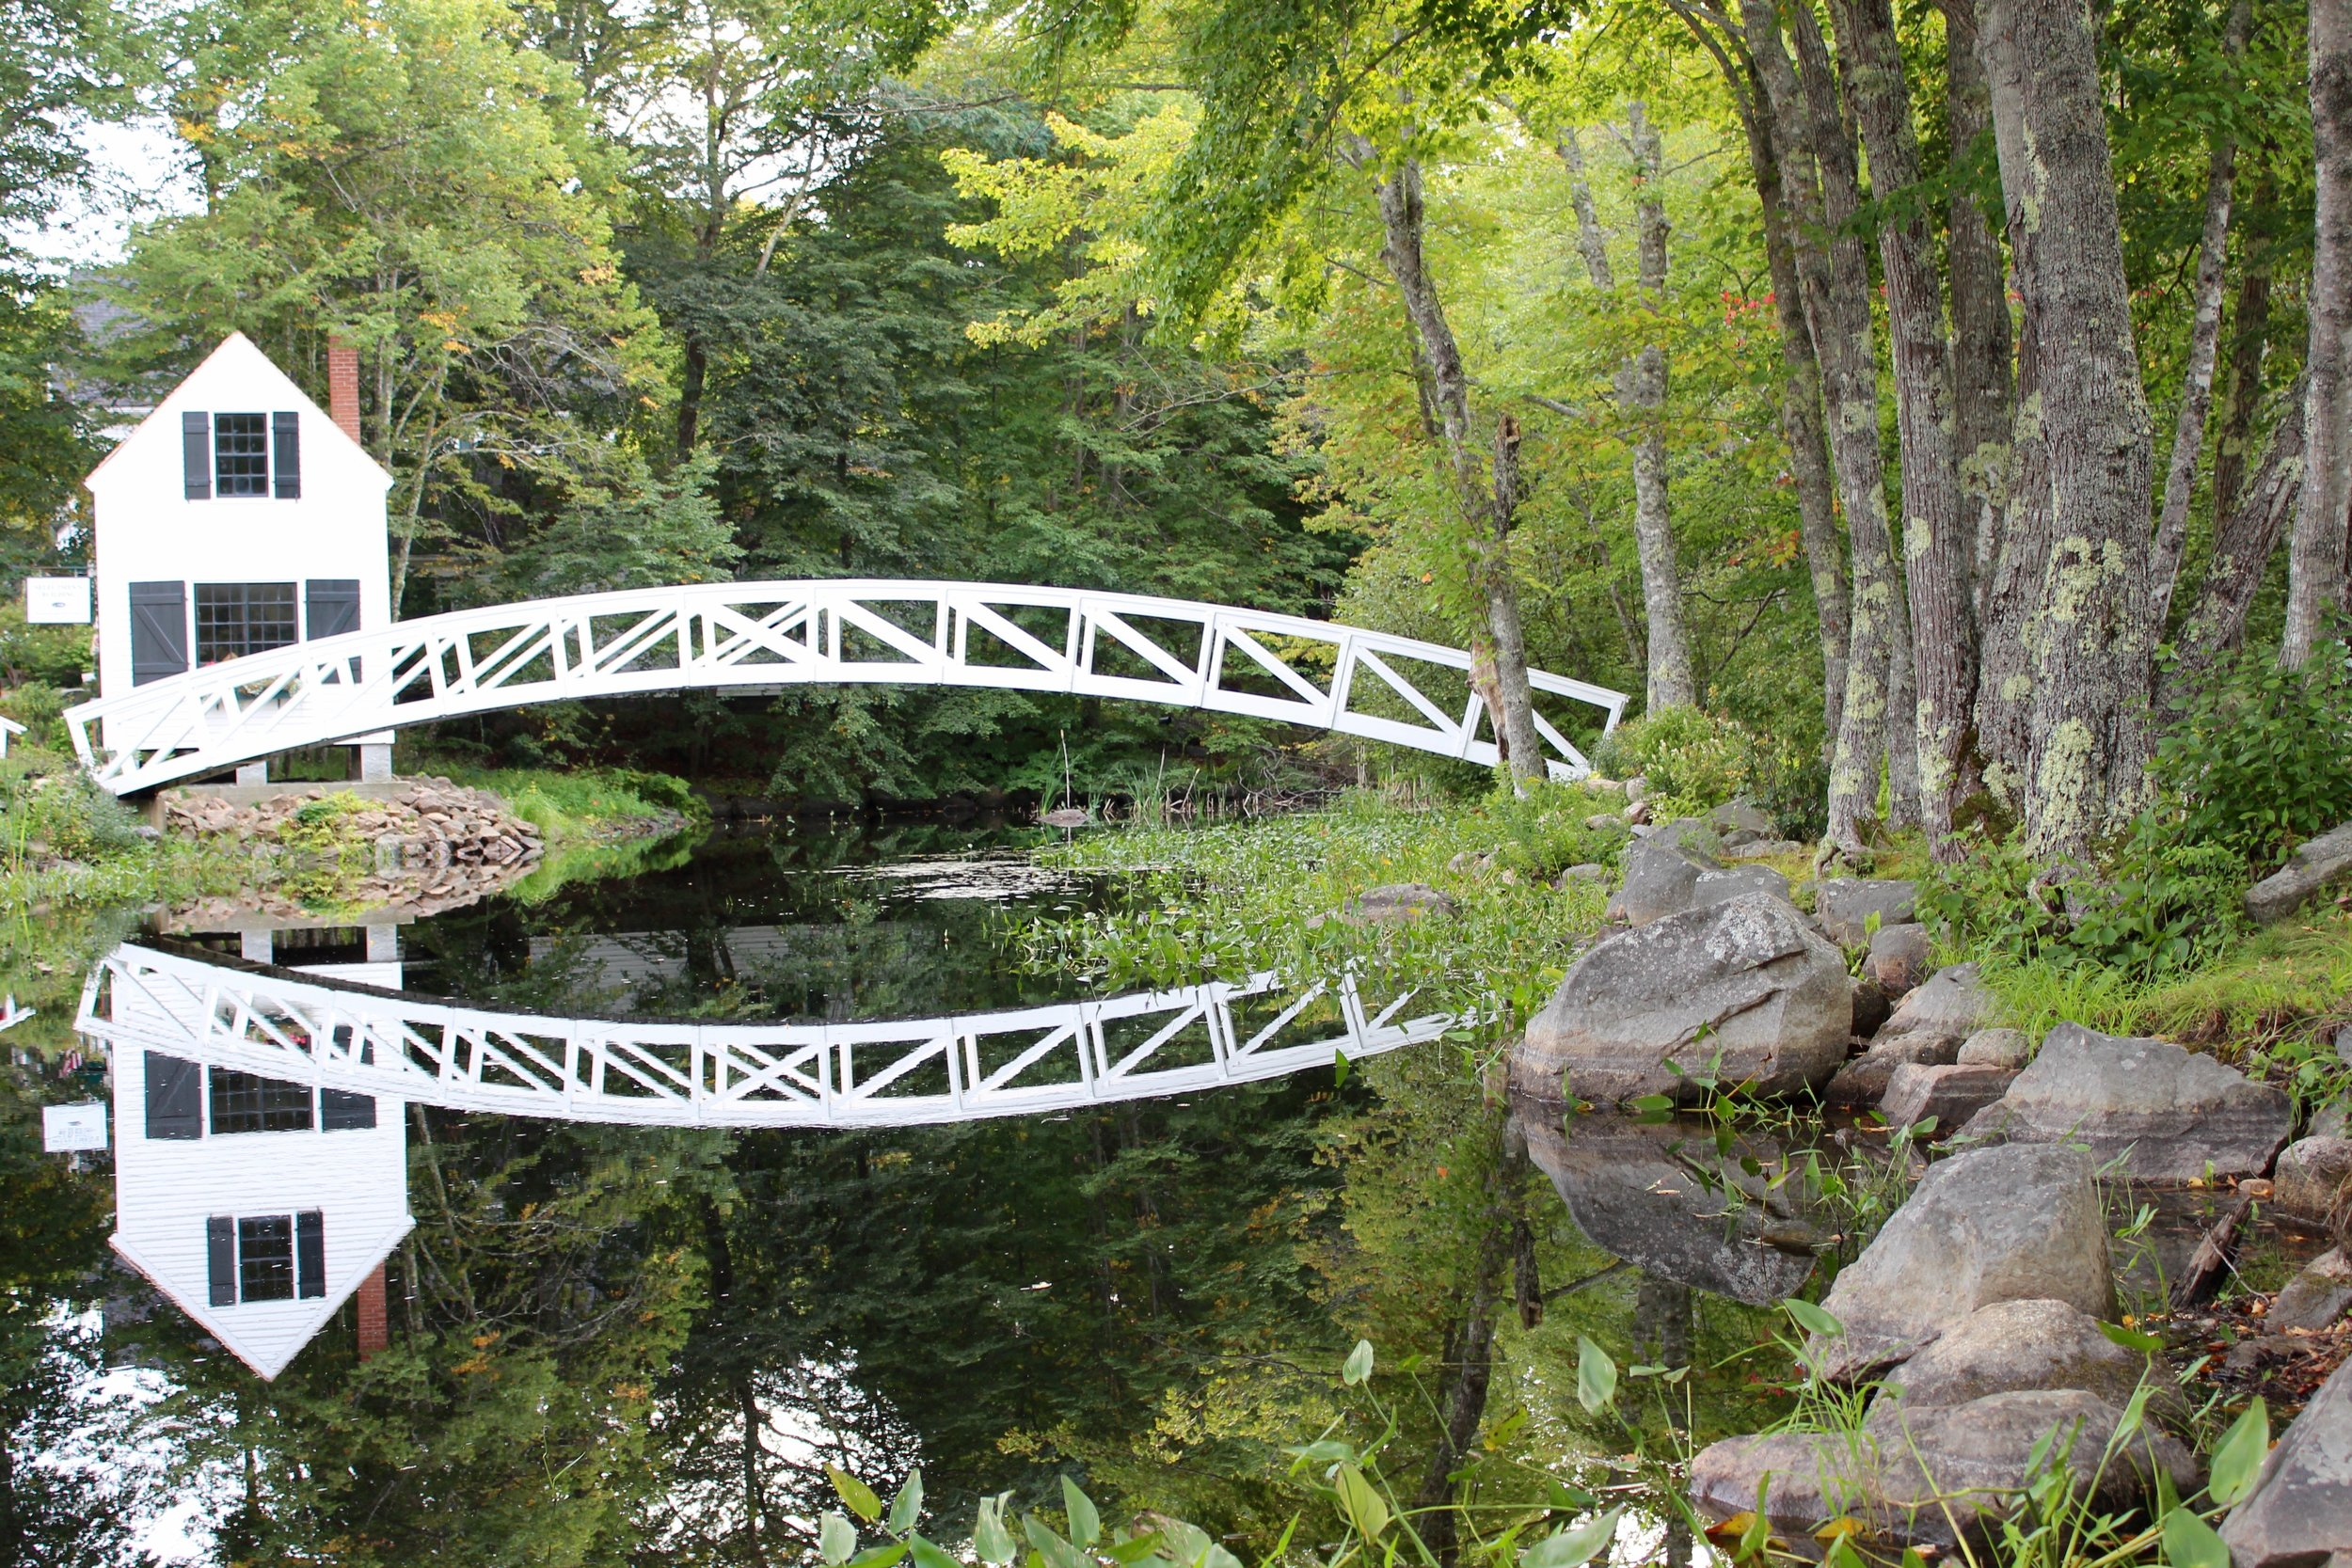 While we are trying not to pick a favorite, this photo just might be our best of the year. That near perfect reflection of that beautiful, old wooden bridge along with the green foliage of Somesville, Maine.